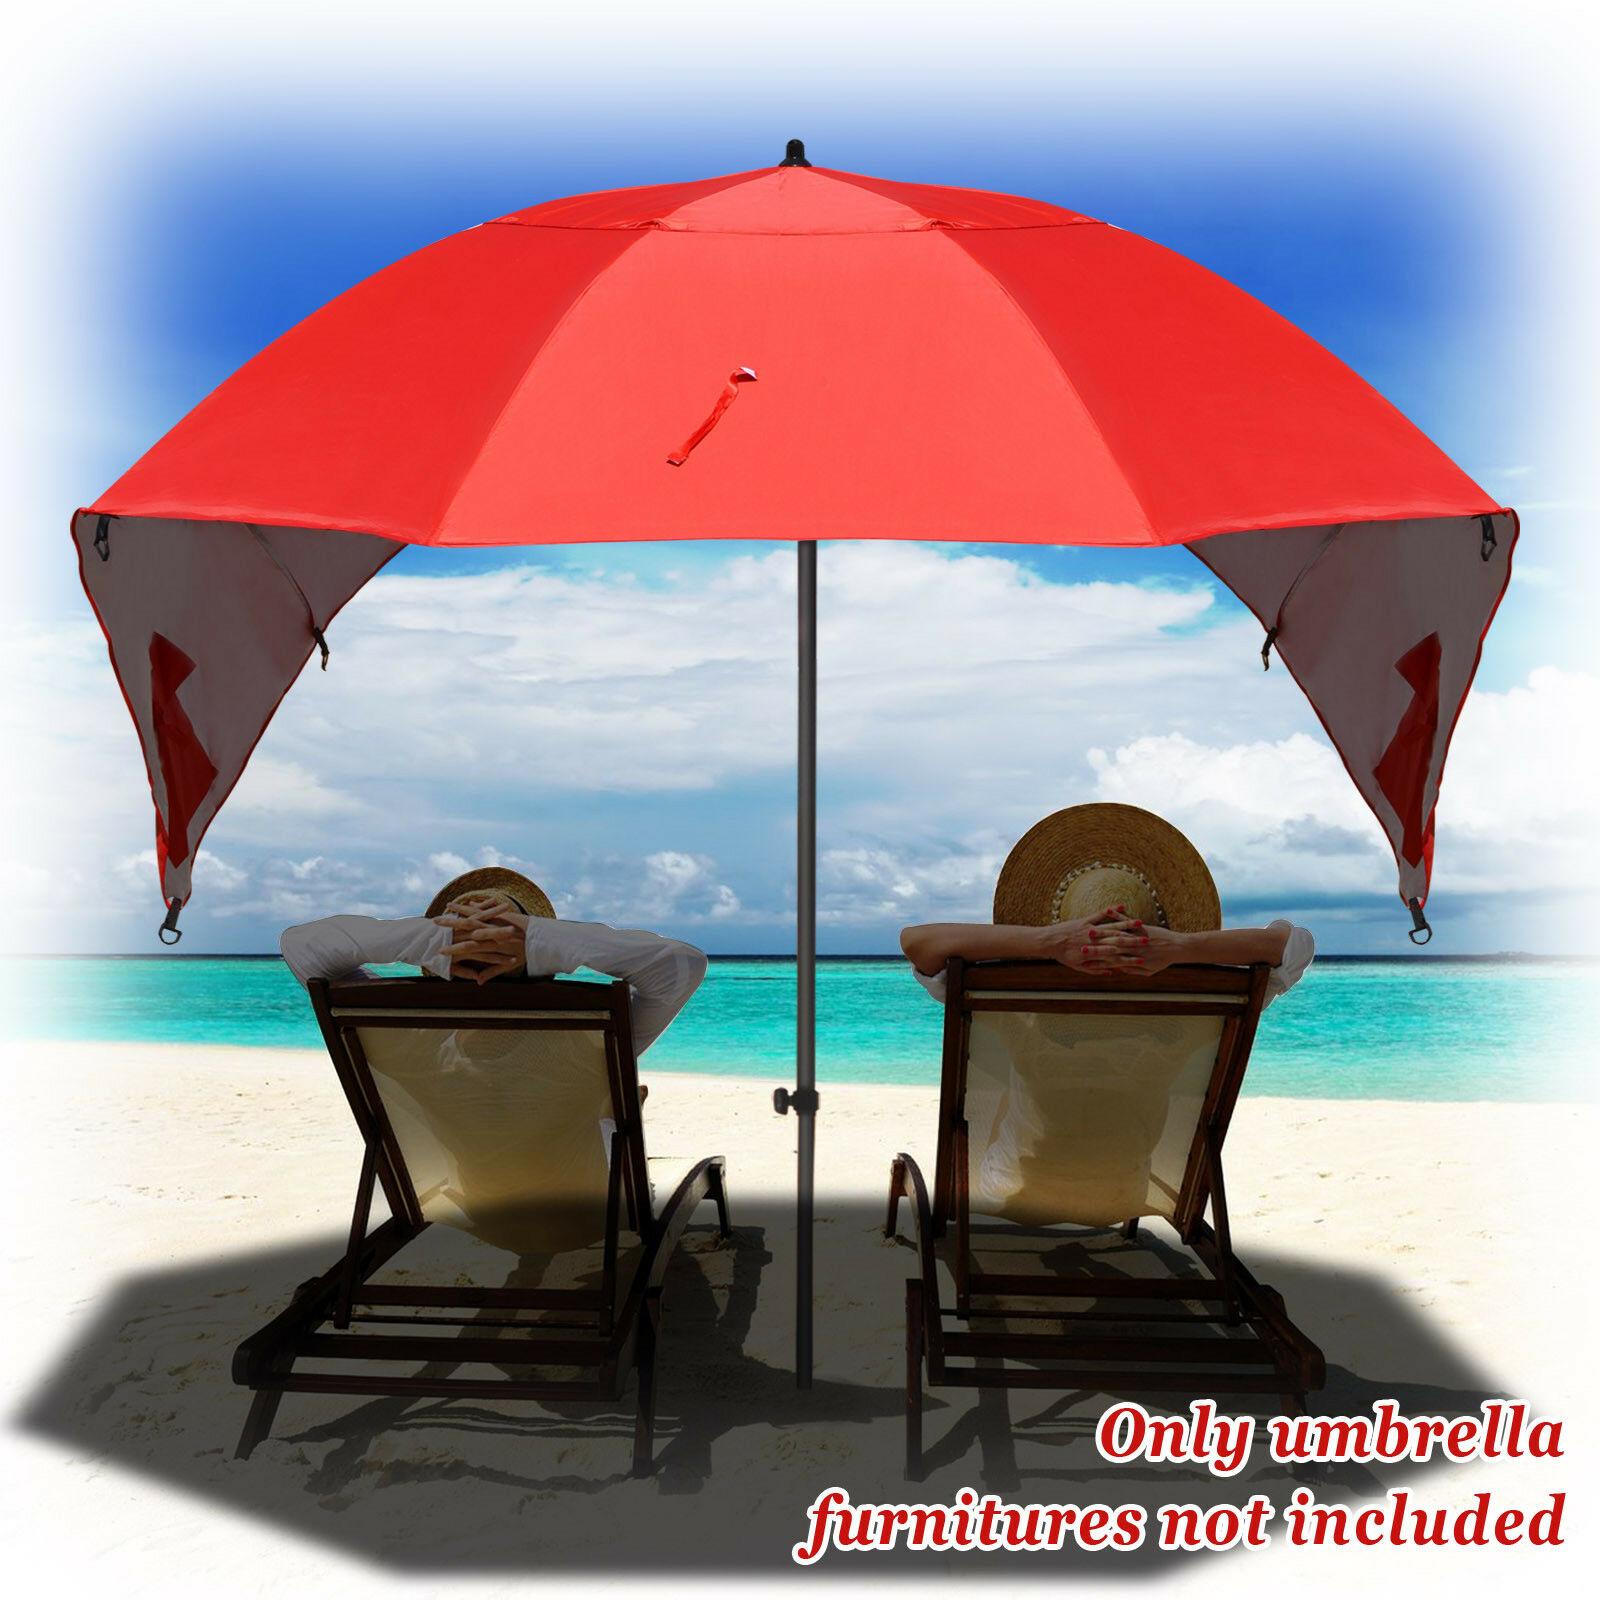 Red Portable Sun and Weather umbrella Shelter Sport or Beach Canopy Tent 8 Foot